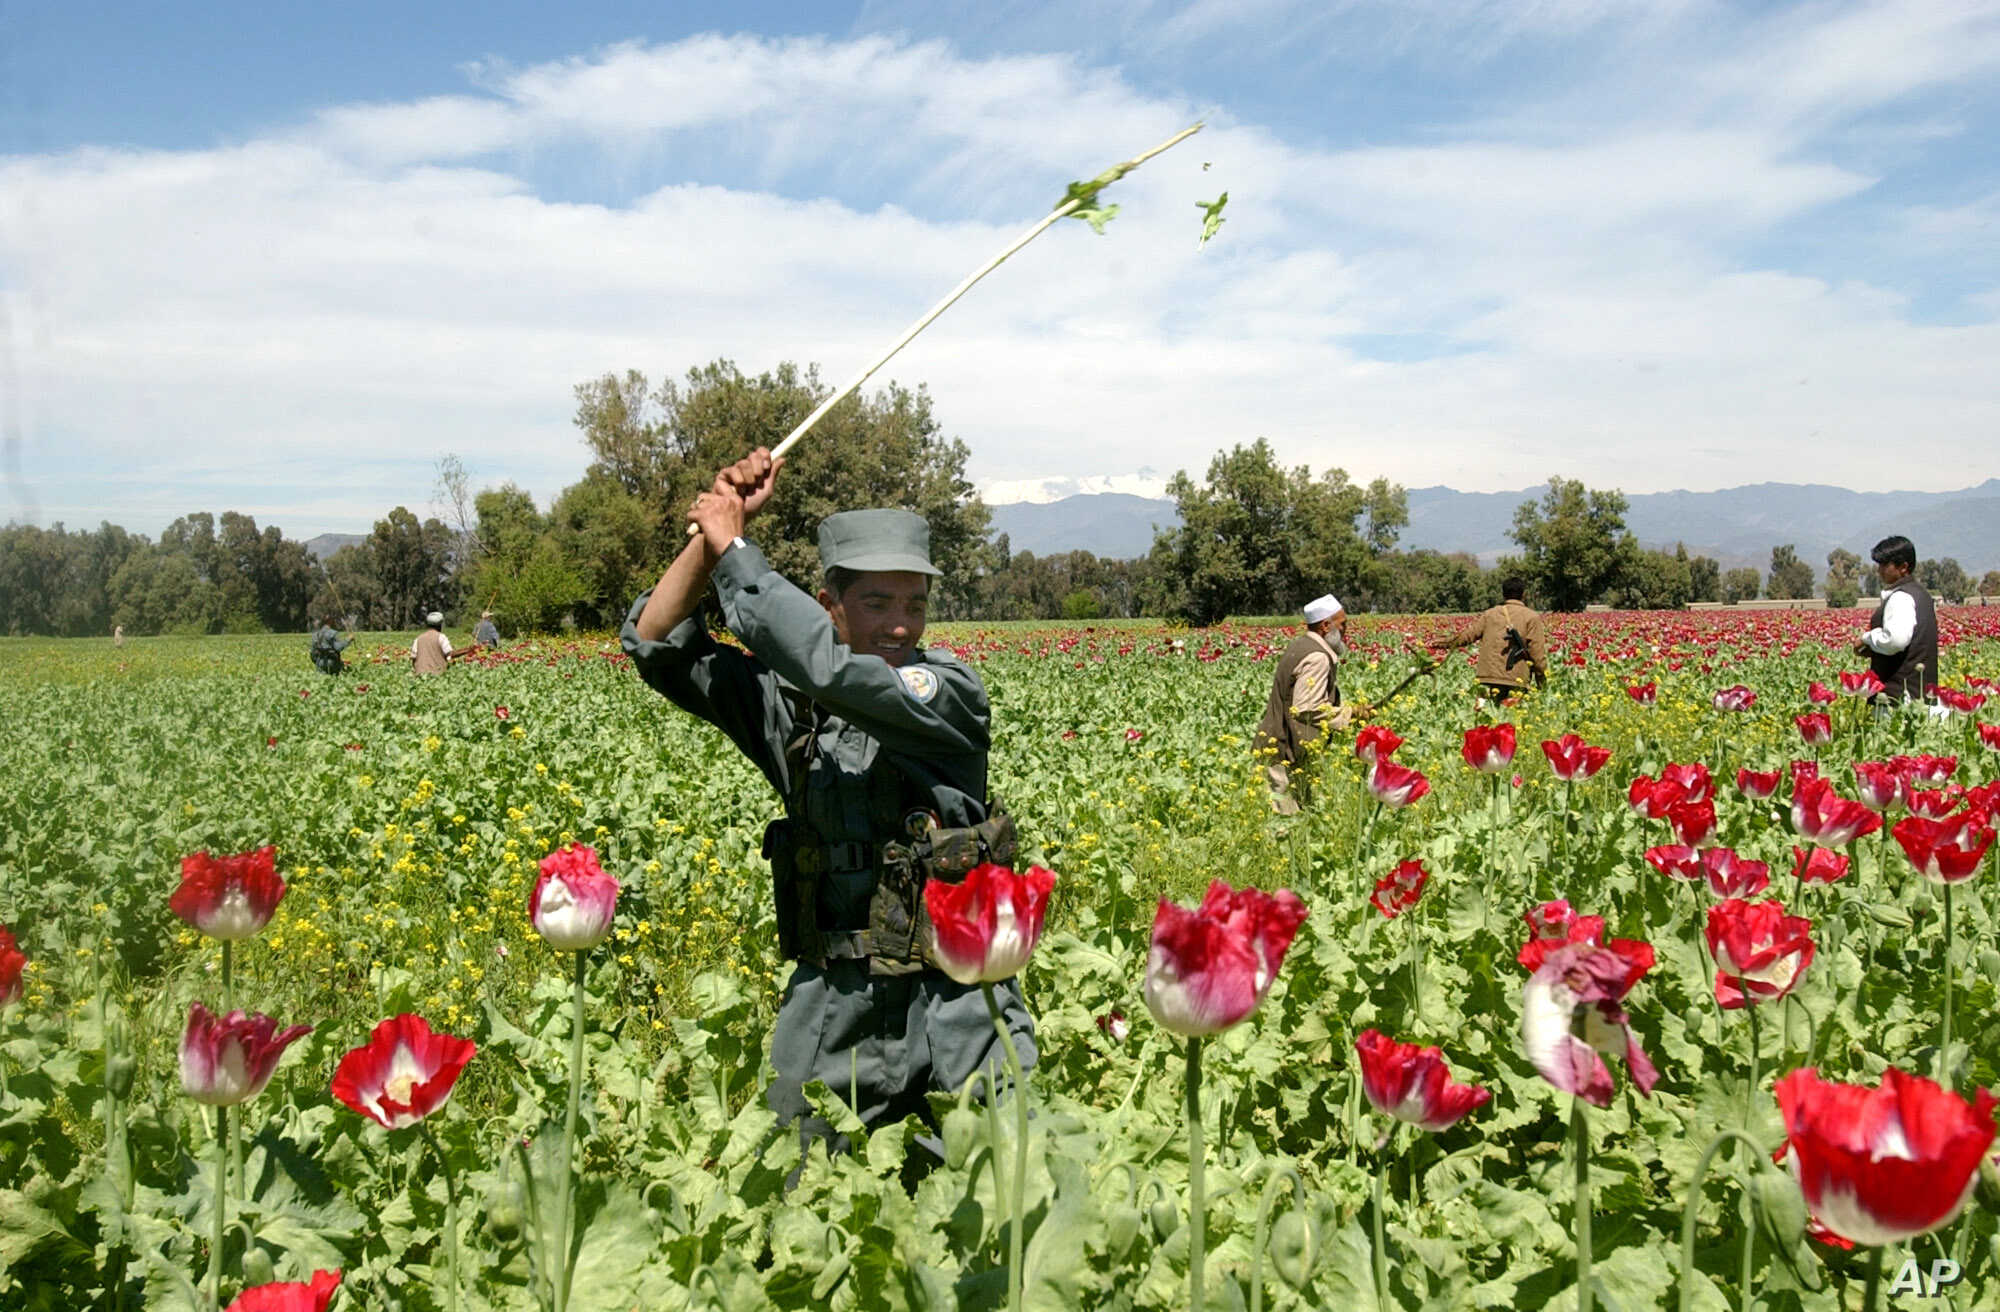 Narcotics in Afghanistan / Poppy eradication